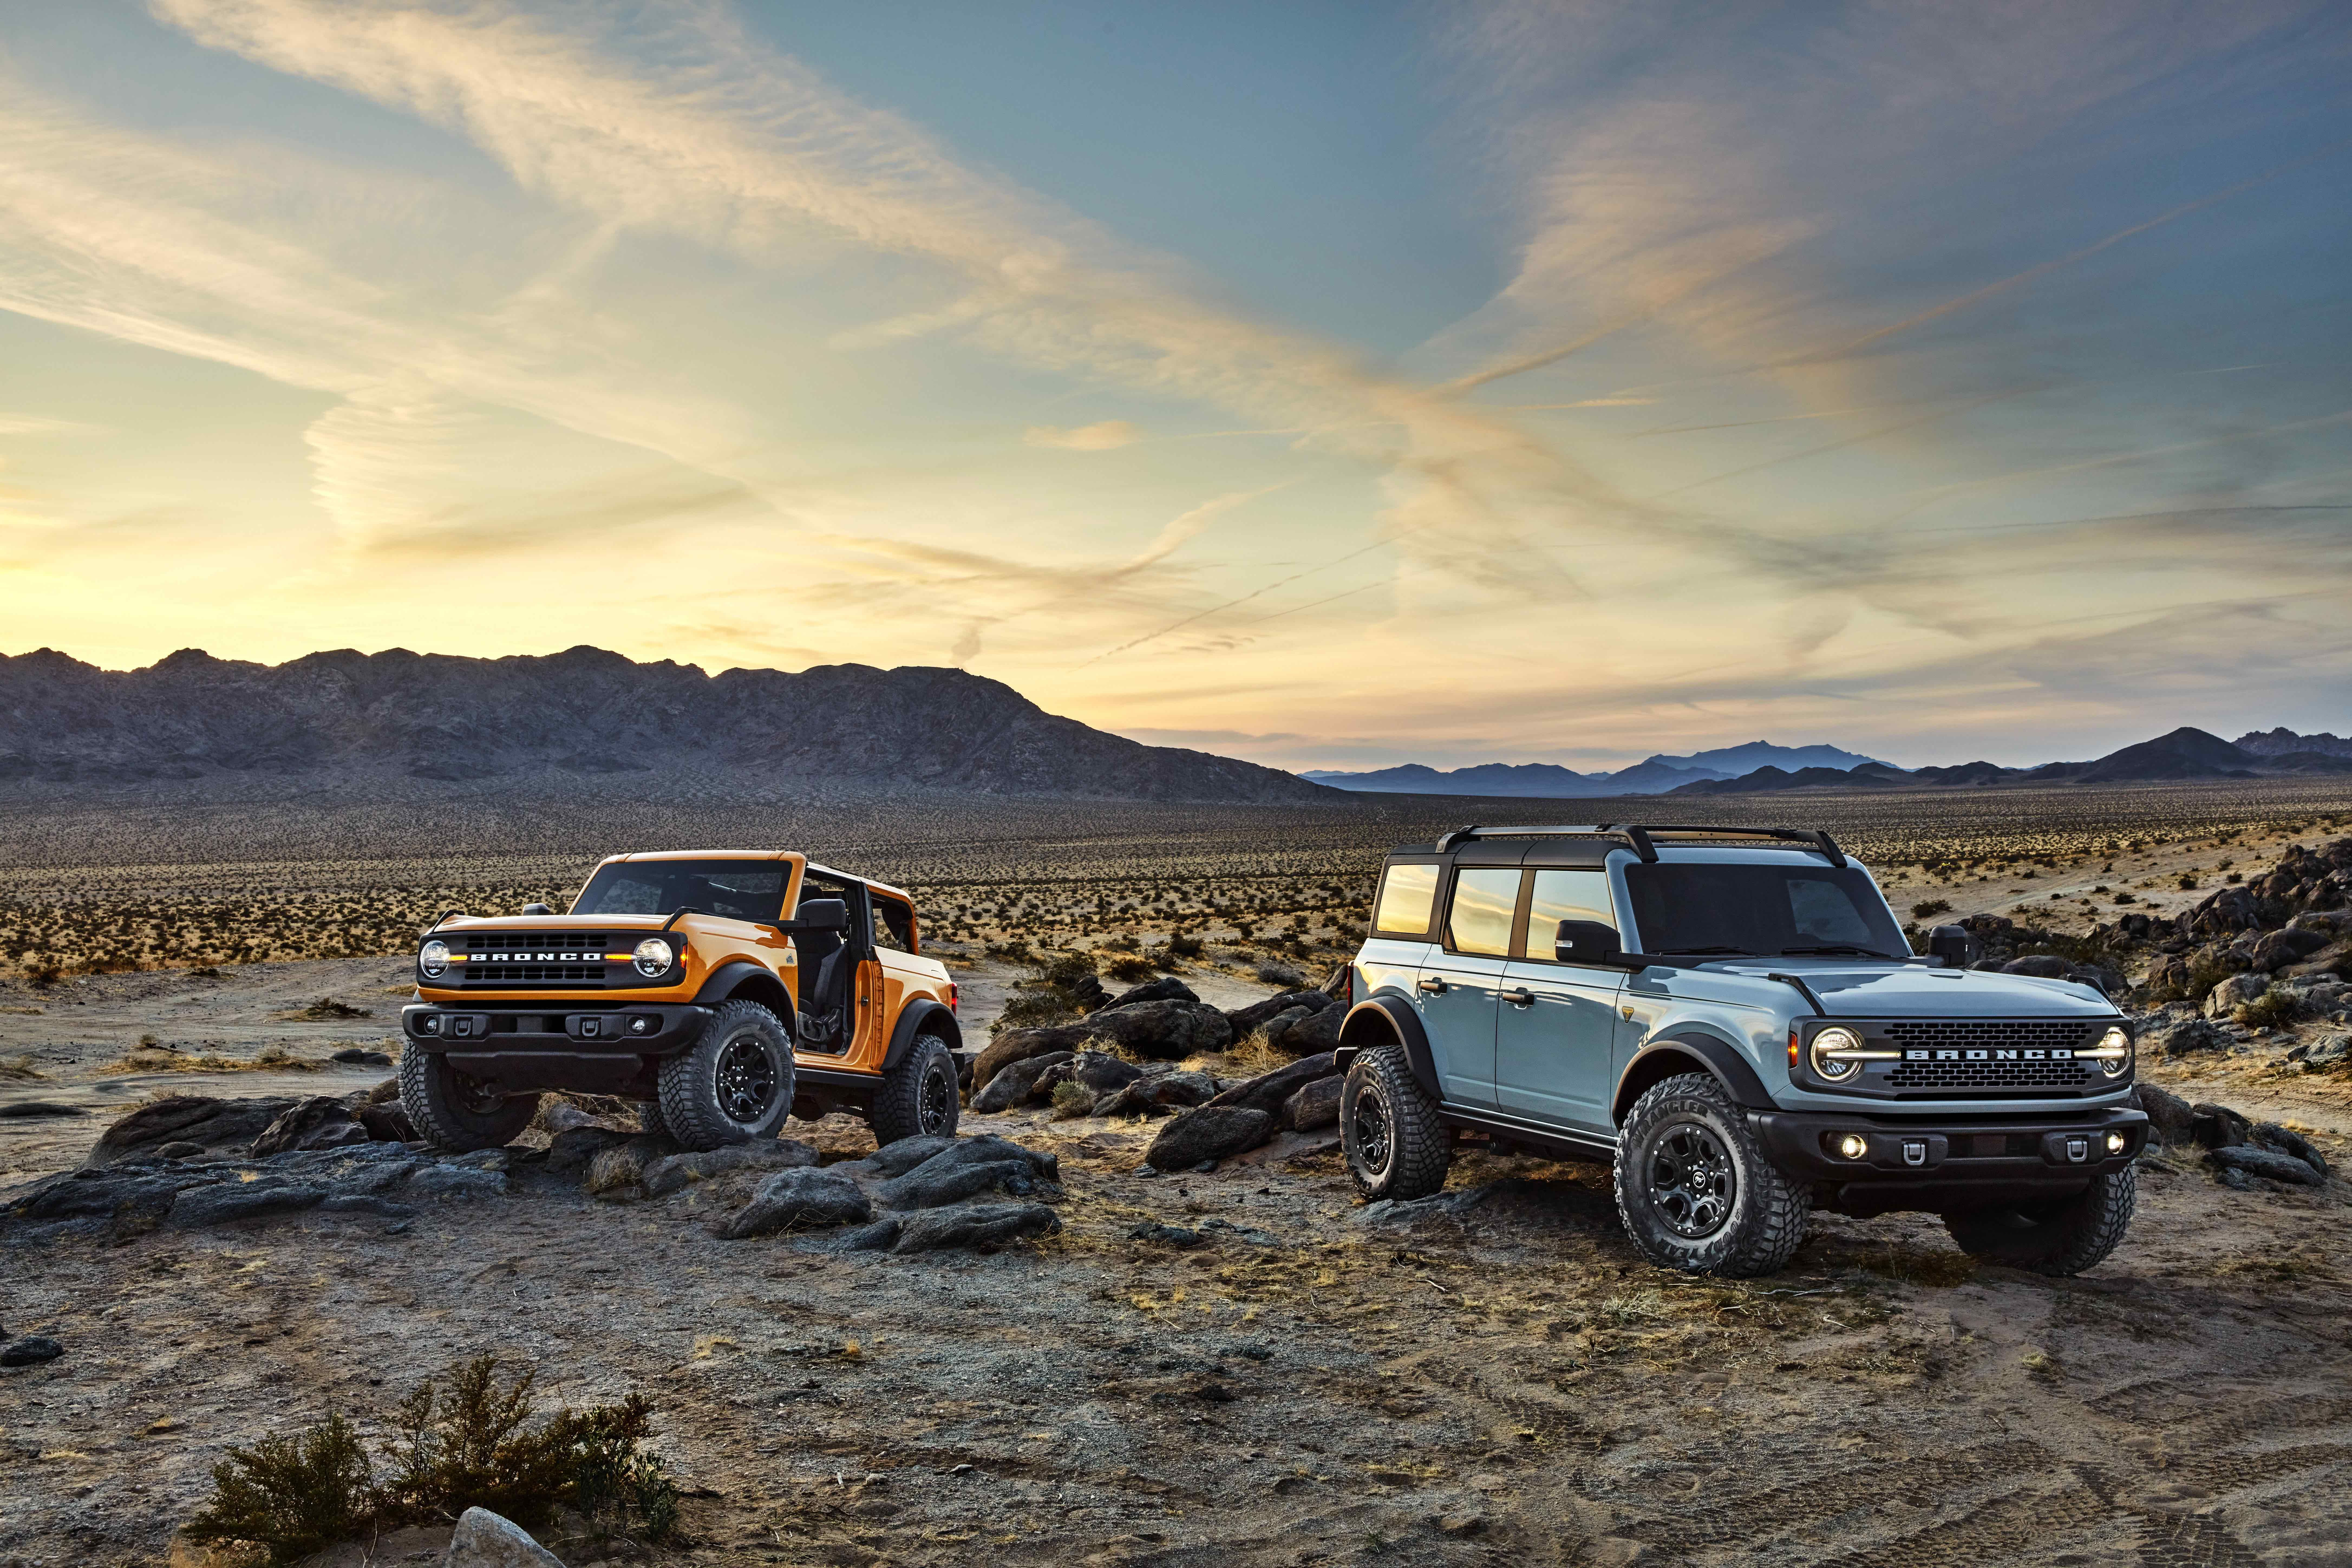 2021 Ford Bronco Comes Out Kicking With Impressive Specs And